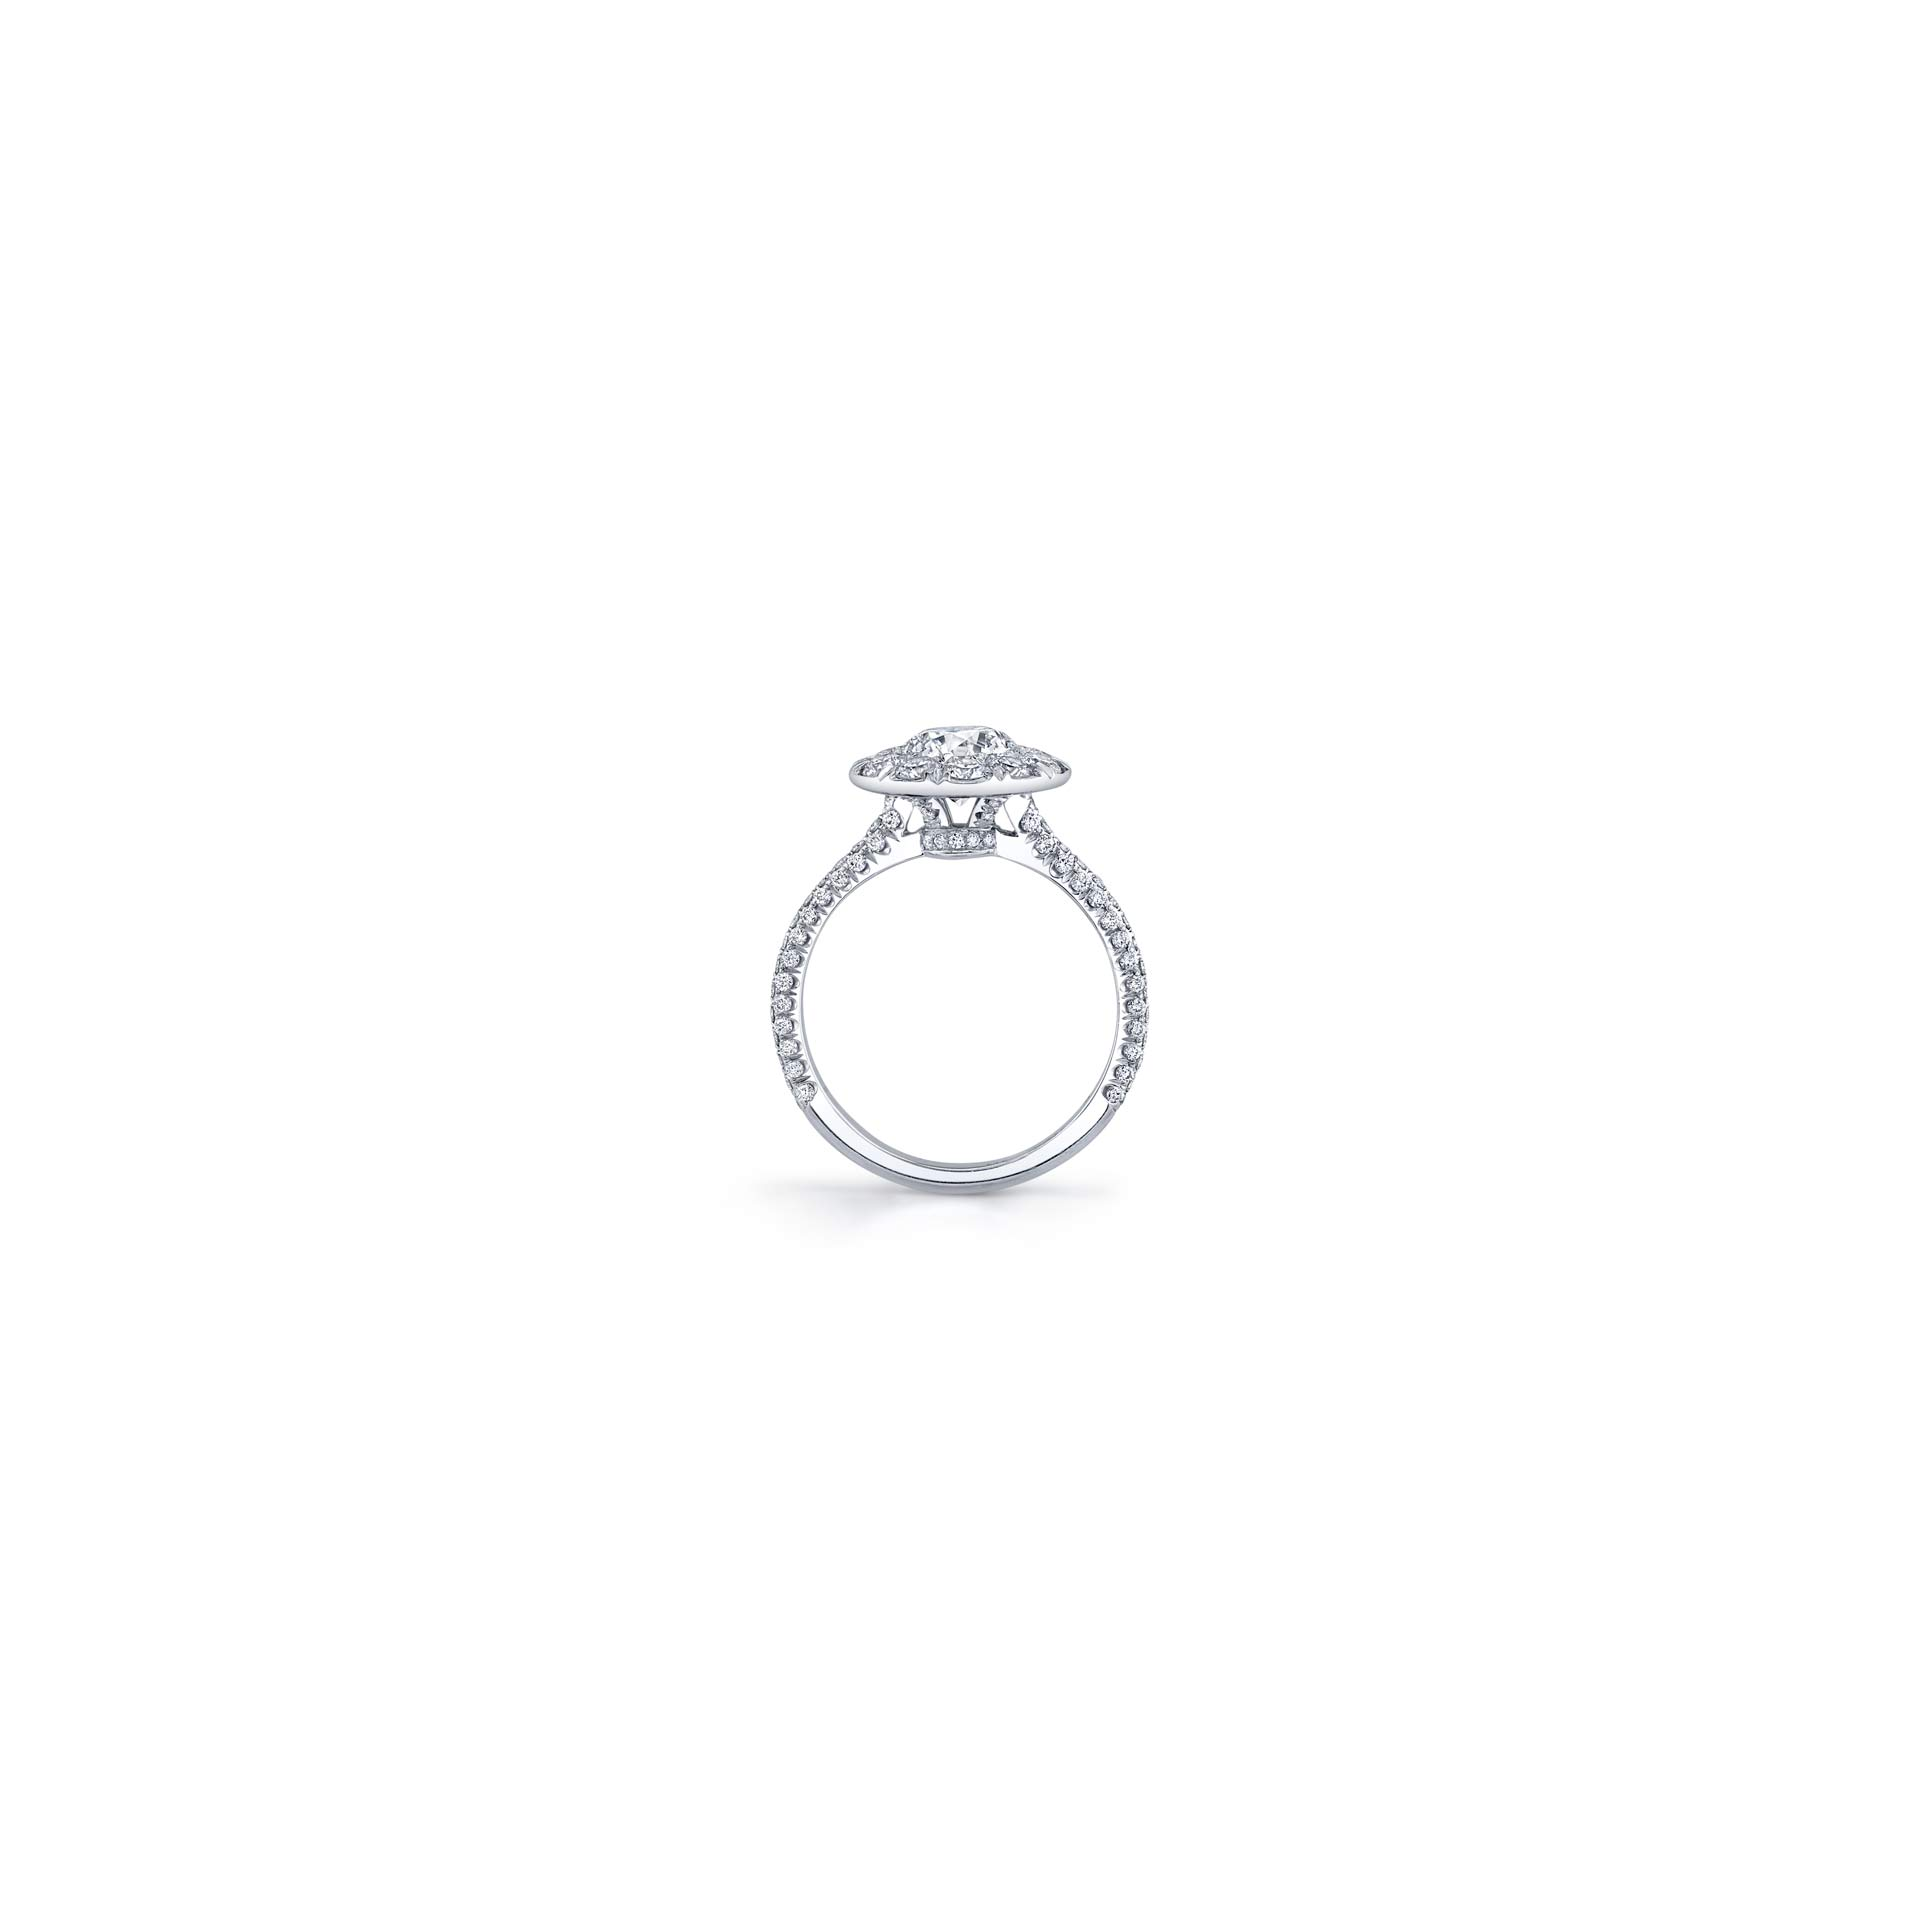 Jacqueline Round Brilliant Seamless Solitaire® Engagement Ring with diamond pavé in 18k White Gold Standing View by Oui by Jean Dousset